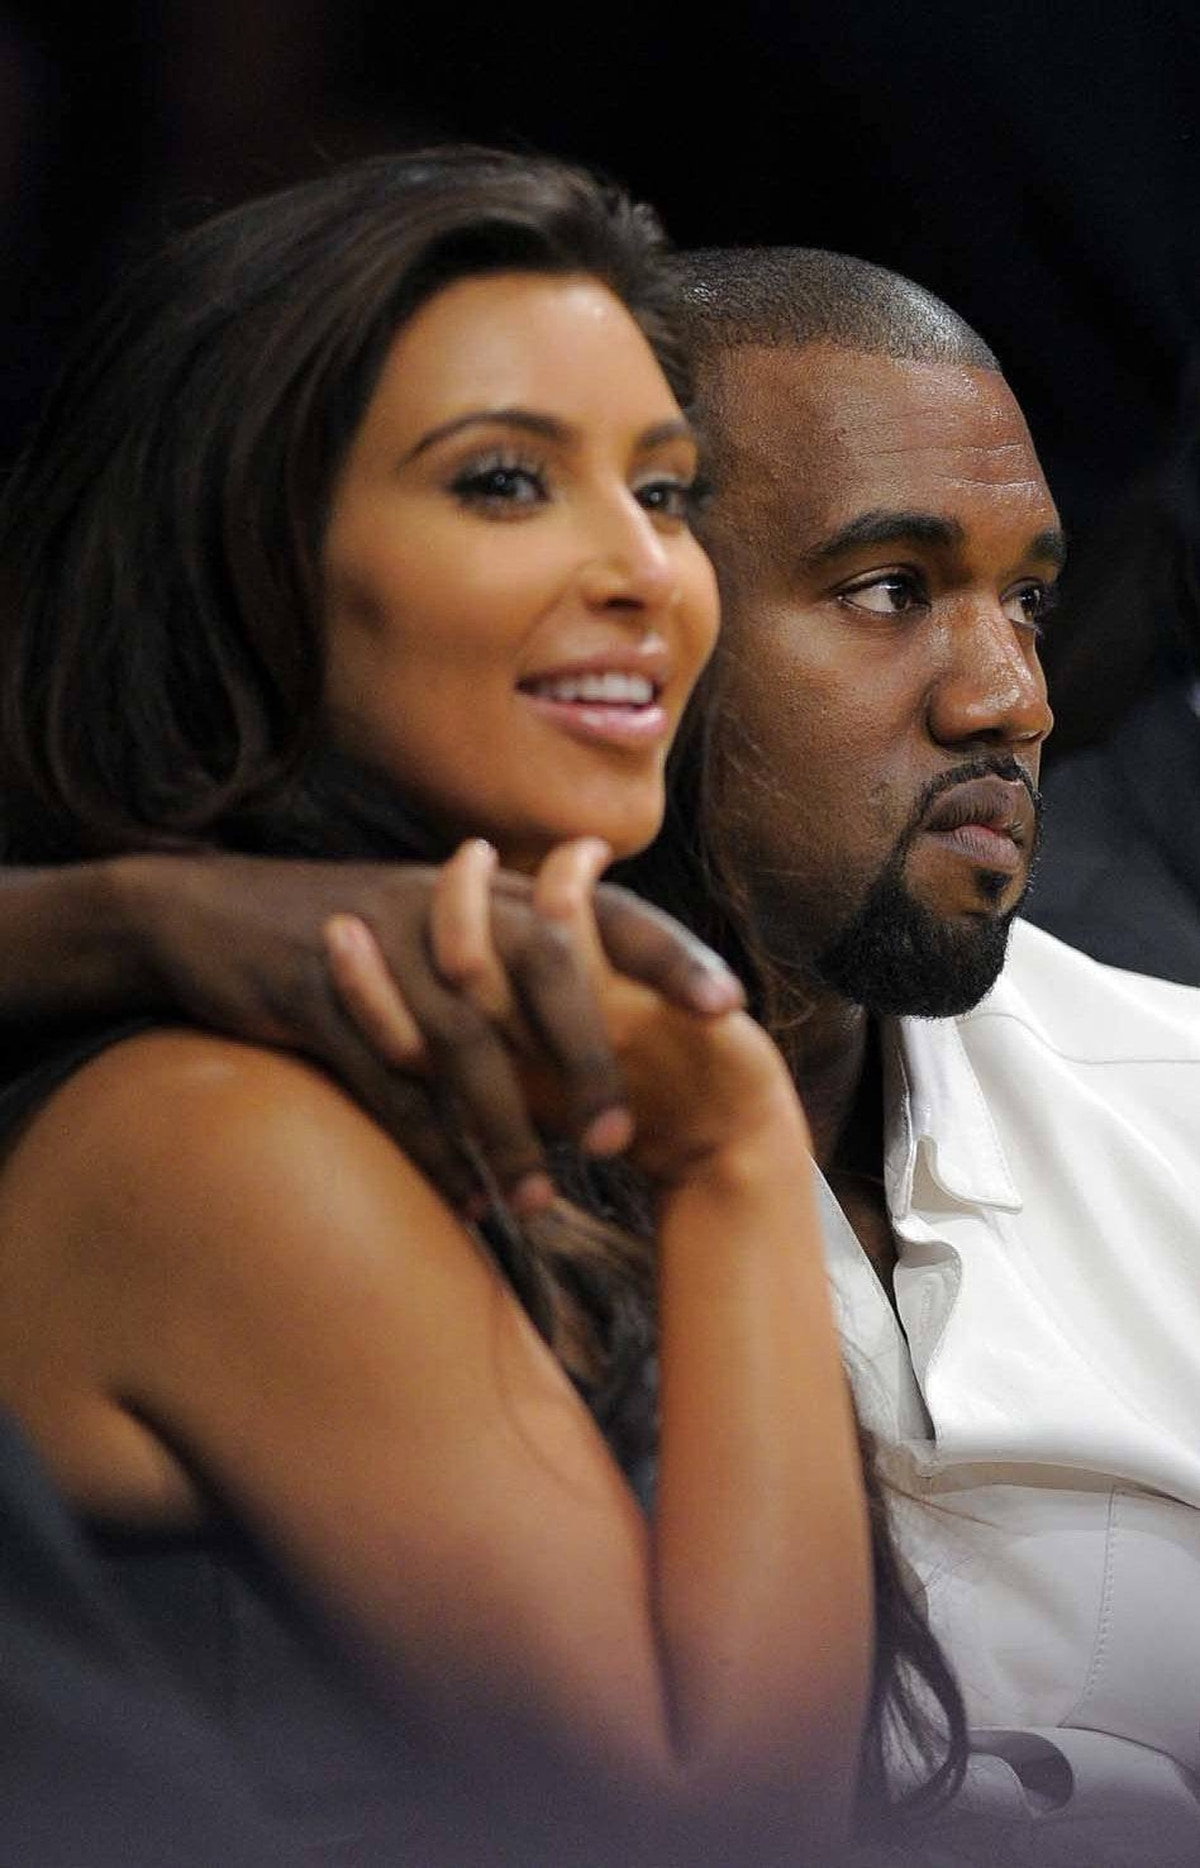 NO. &: Kim Kardashian The reality-TV star, seen here with her future ex-husband Kanye West, managed to get both married and separated in the year under consideration, events which both earned her untold millions. This is a reliable indicator that shame and talent are not part of the Forbes algorithm.